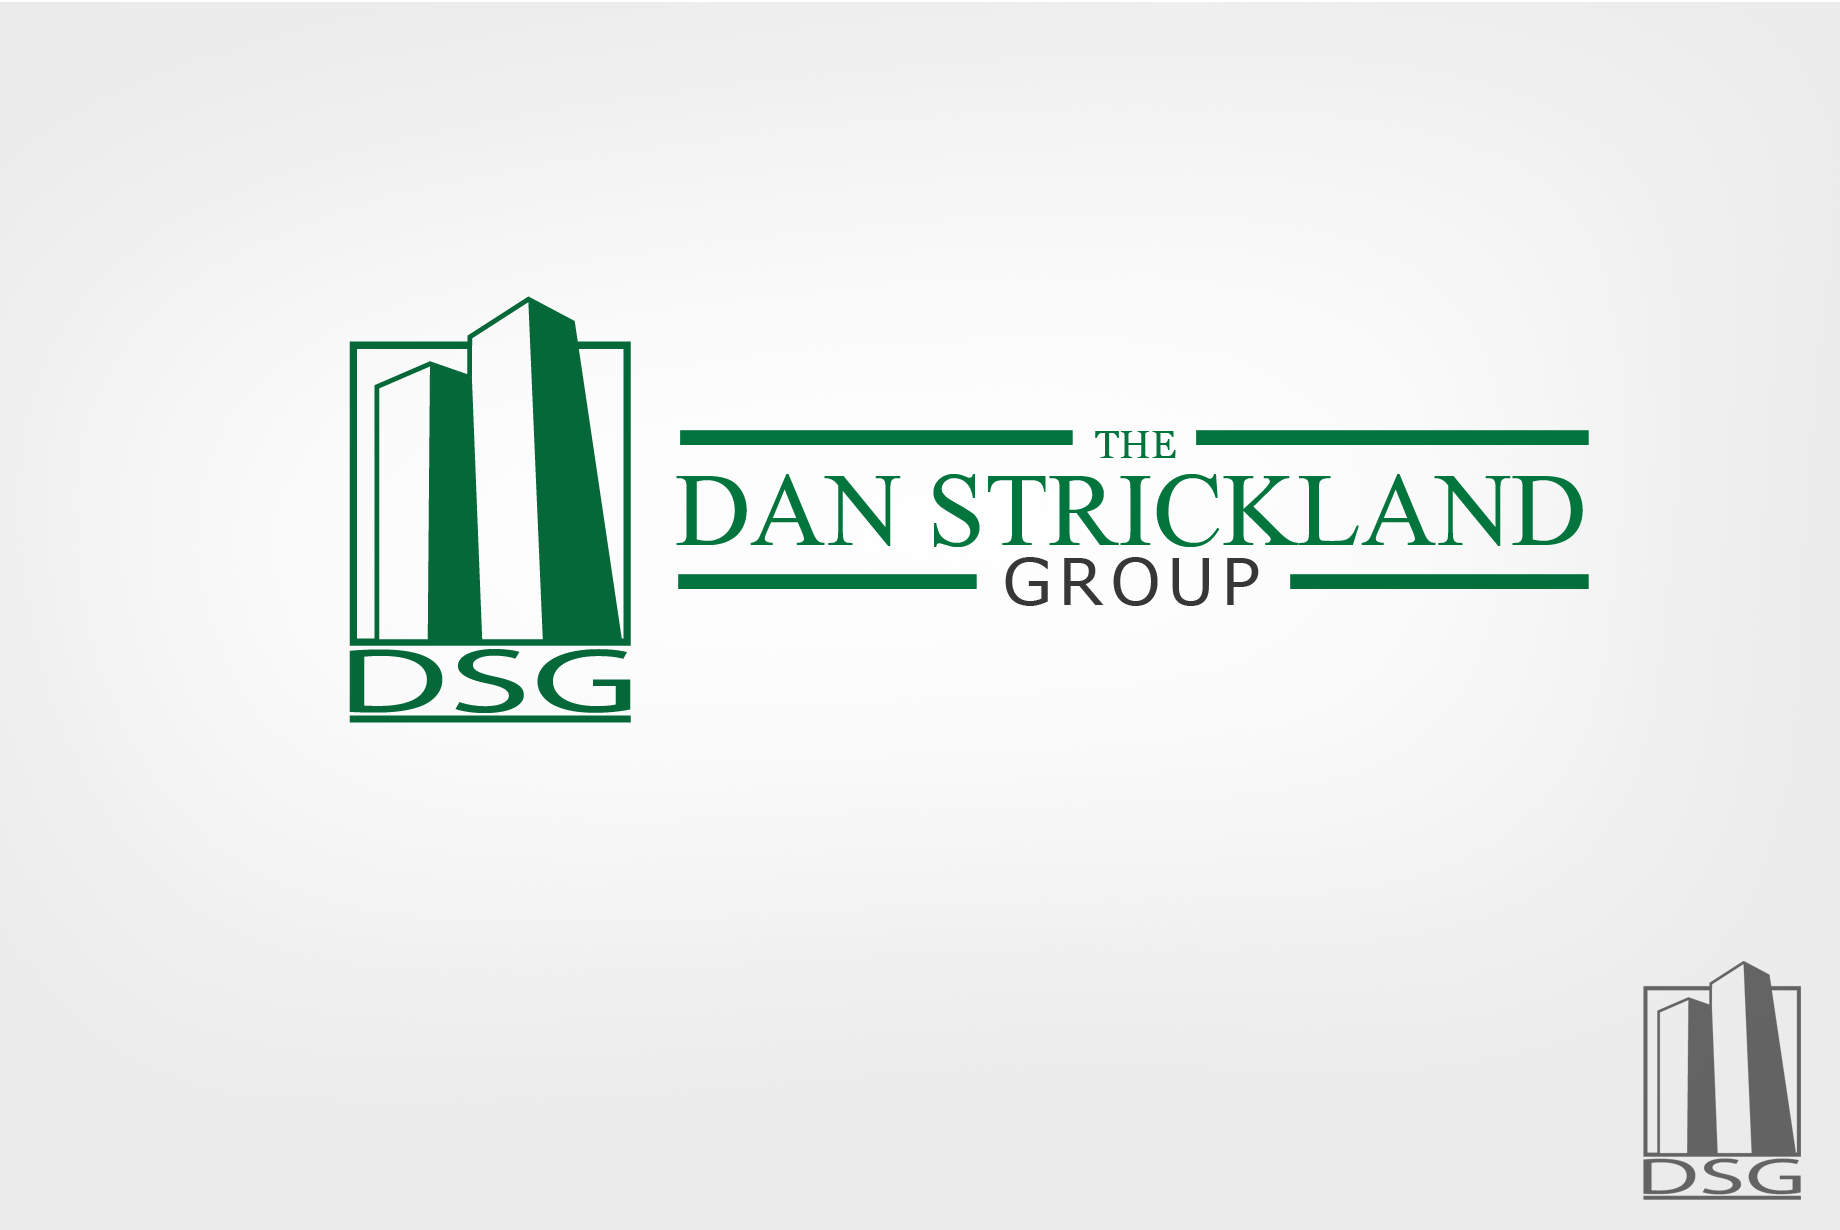 Logo Design by Jan Chua - Entry No. 168 in the Logo Design Contest Creative Logo Design for The Dan Strickland Group.